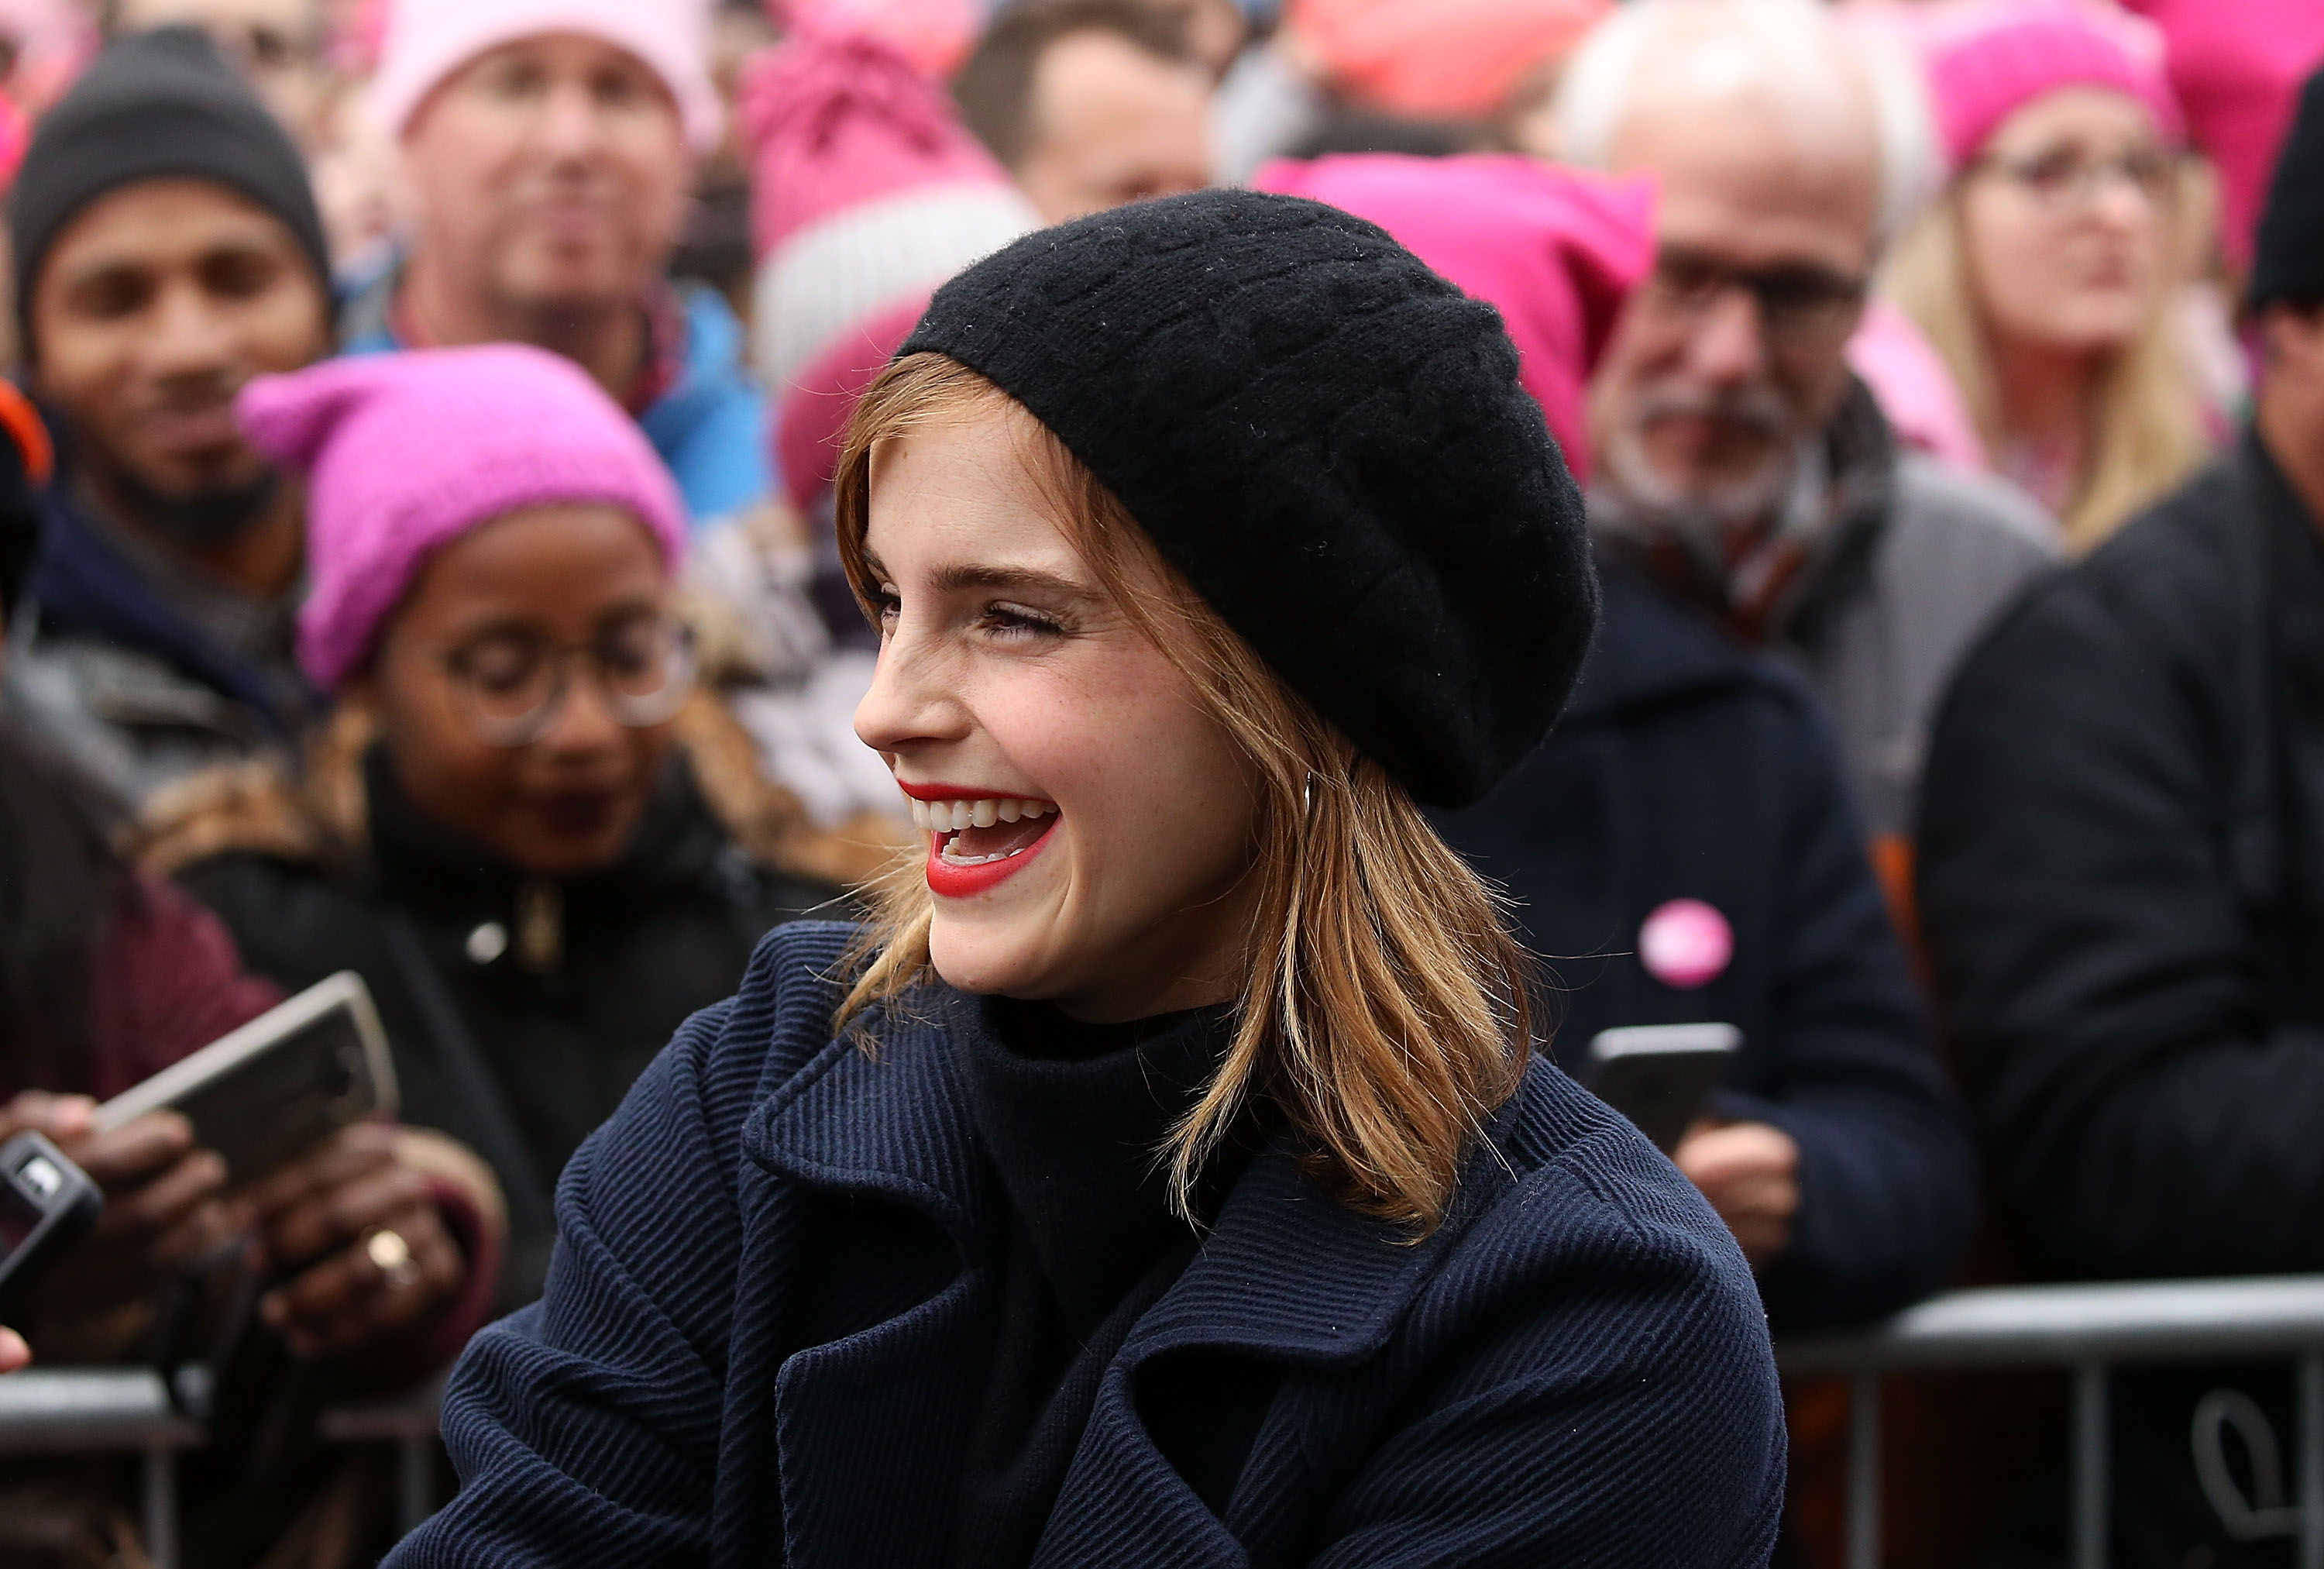 Emma Watson attends the rally at the Women's March on Washington on January 21, 2017 in Washington, DC.